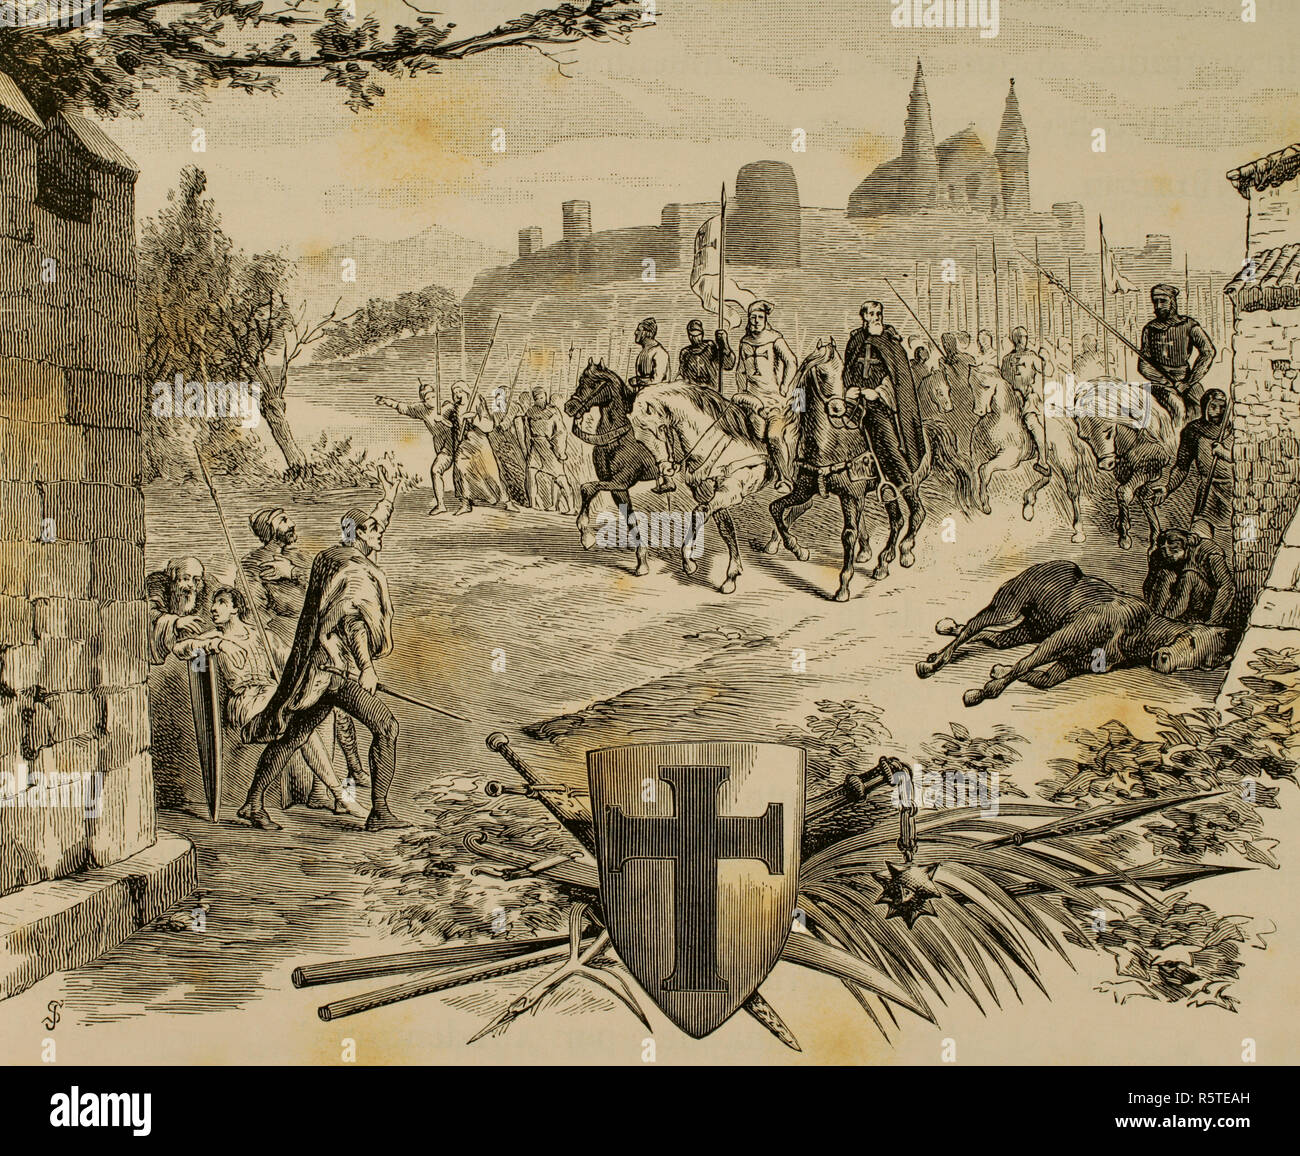 Middle Ages. Religious wars between the West and the East led by the Pope, carried out by Christian Latin Europe against Muslims, pagan Slavs, Jews, among others . Christian soldiers against infidels. Engraving. La Civilizacion (The Civilization), volume III, 1882. - Stock Image